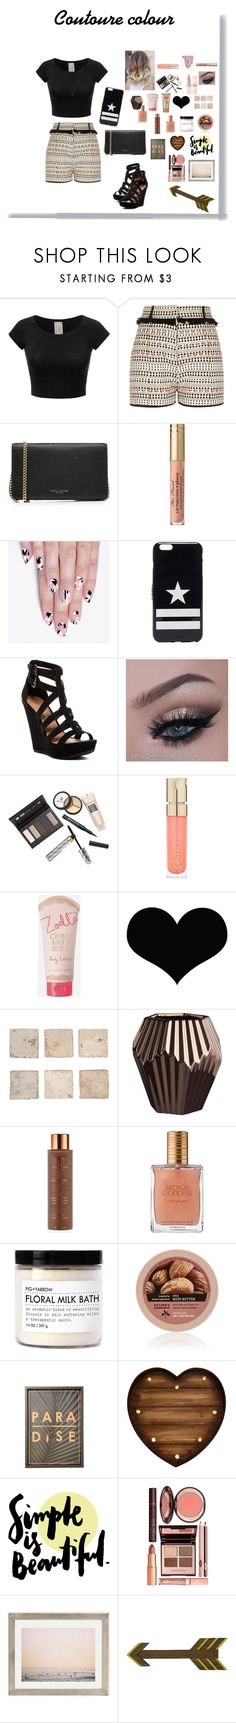 """""""Couture  colour"""" by vain-vanny ❤ liked on Polyvore featuring River Island, Marc Jacobs, alfa.K, Givenchy, Chinese Laundry, Borghese, Smith & Cult, Zoella Beauty, Brika and CB2"""